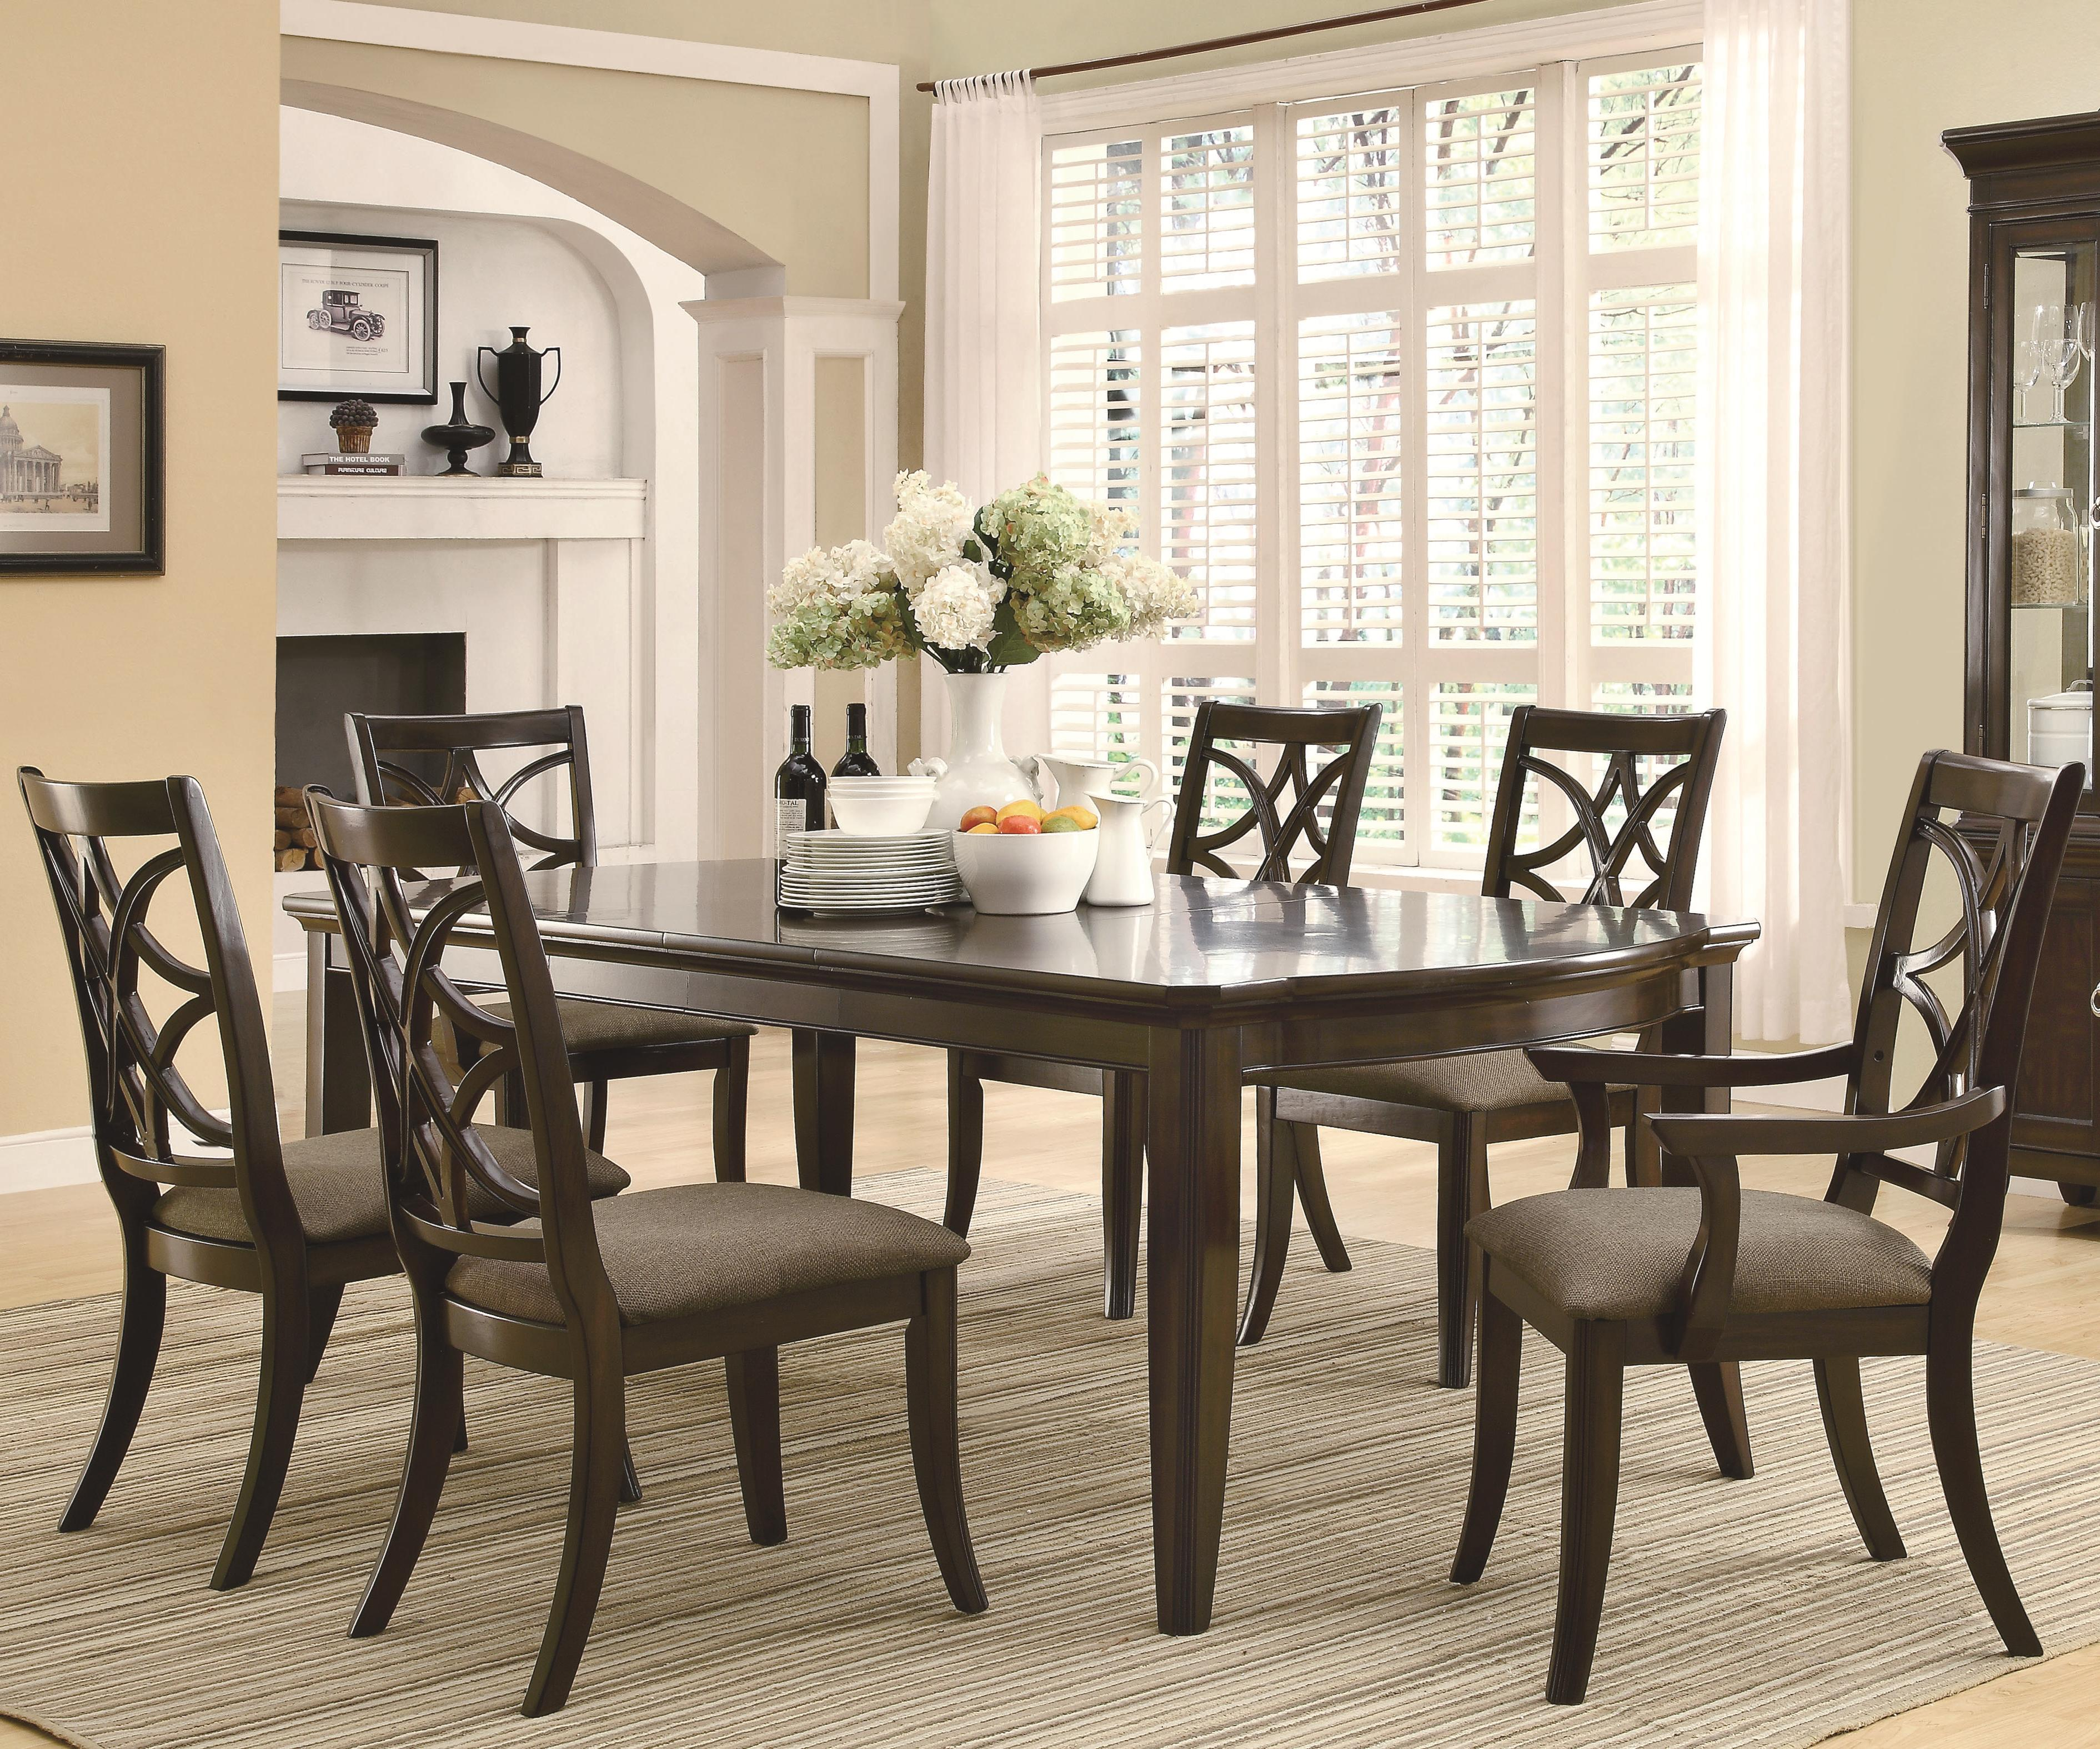 Coaster Meredith 7 Piece Dining Set - Item Number: 103531+2x33+4x32